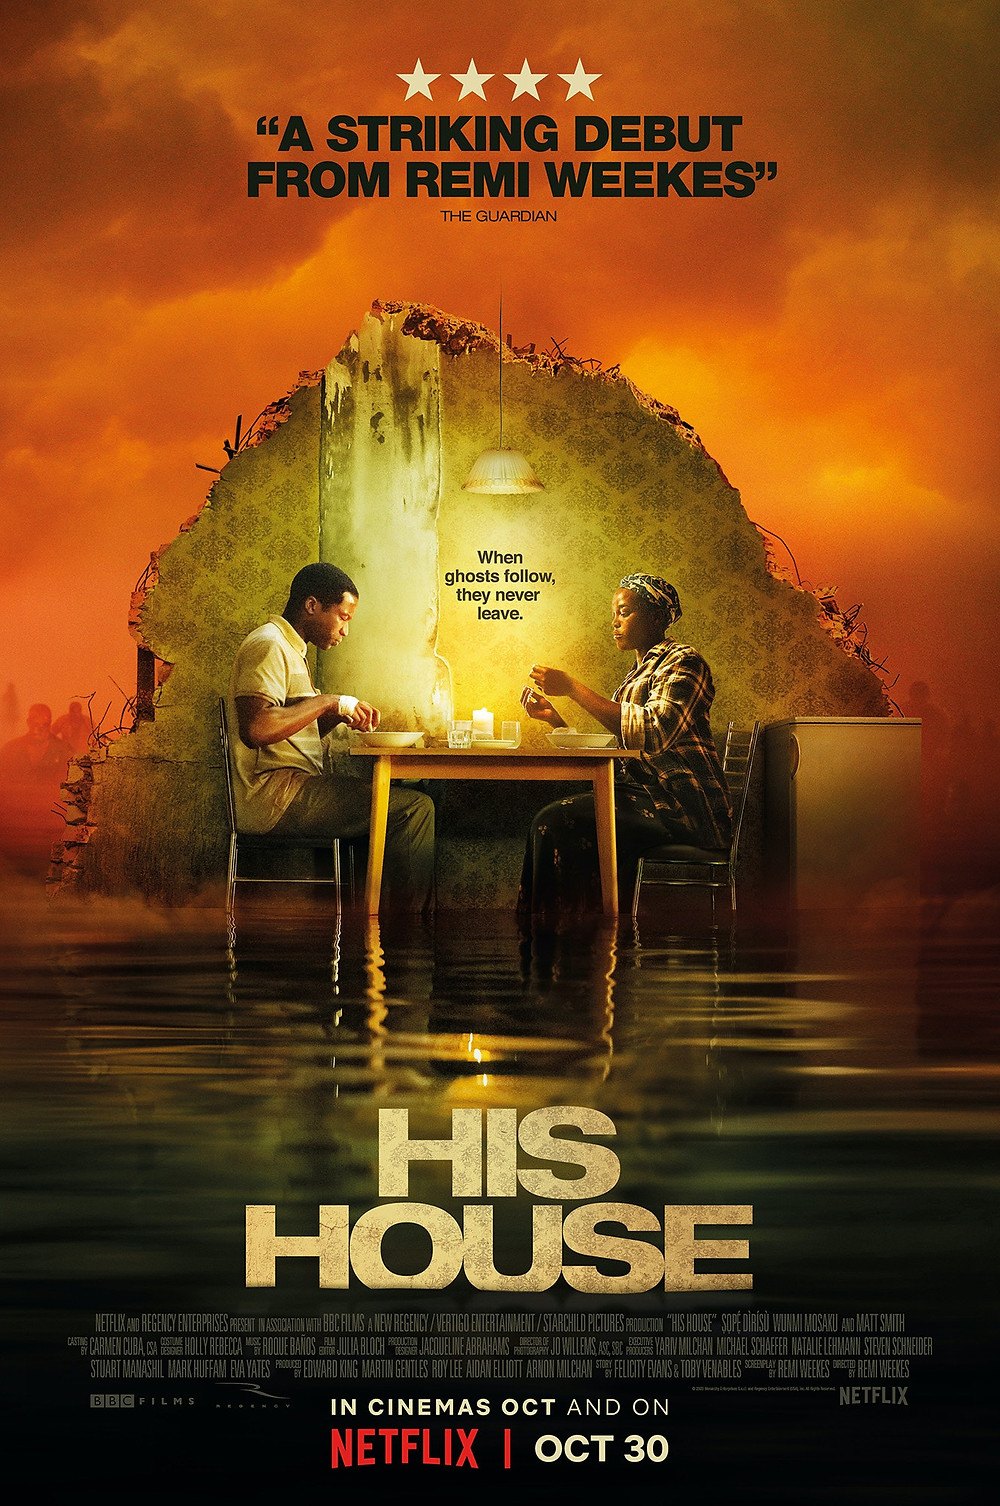 Promotional poster for a movie on Netflix right now called 'His House'